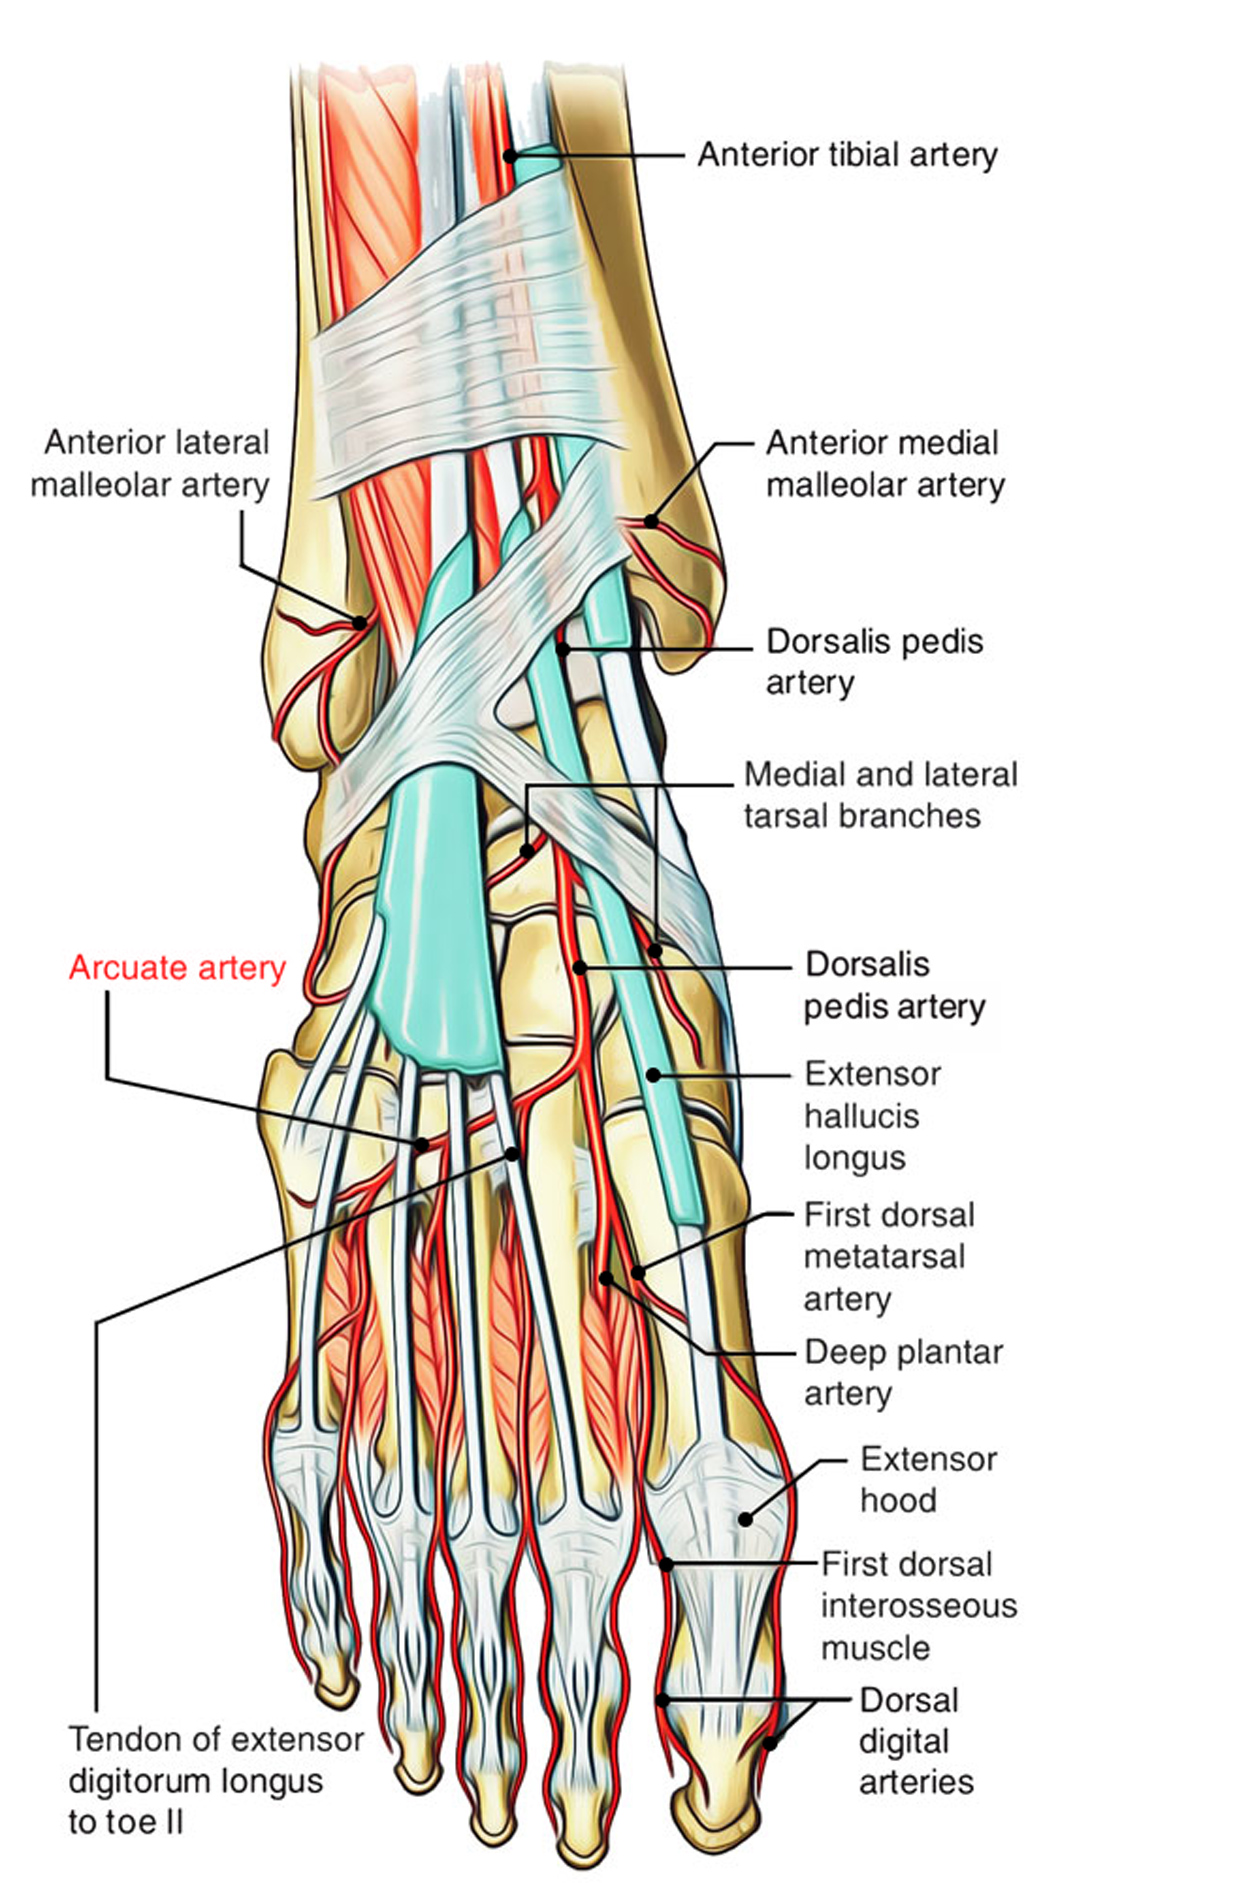 Easy Notes On 【Arcuate Arteries – Foot】Learn in Just 3 Minutes!